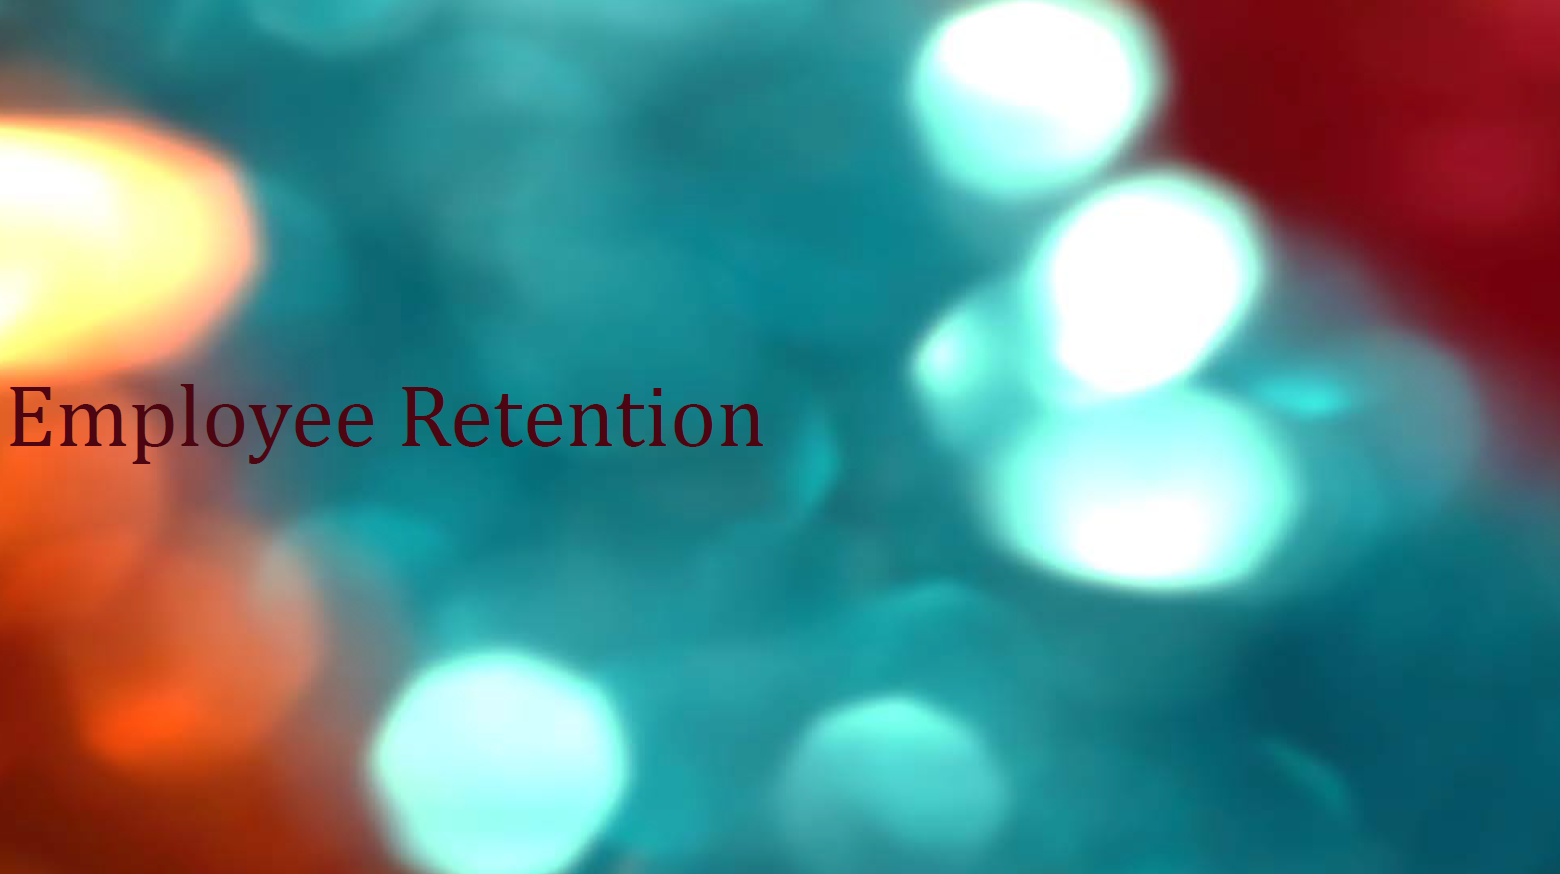 Realising Effective Retention Strategies to Enhance Employee Engagement